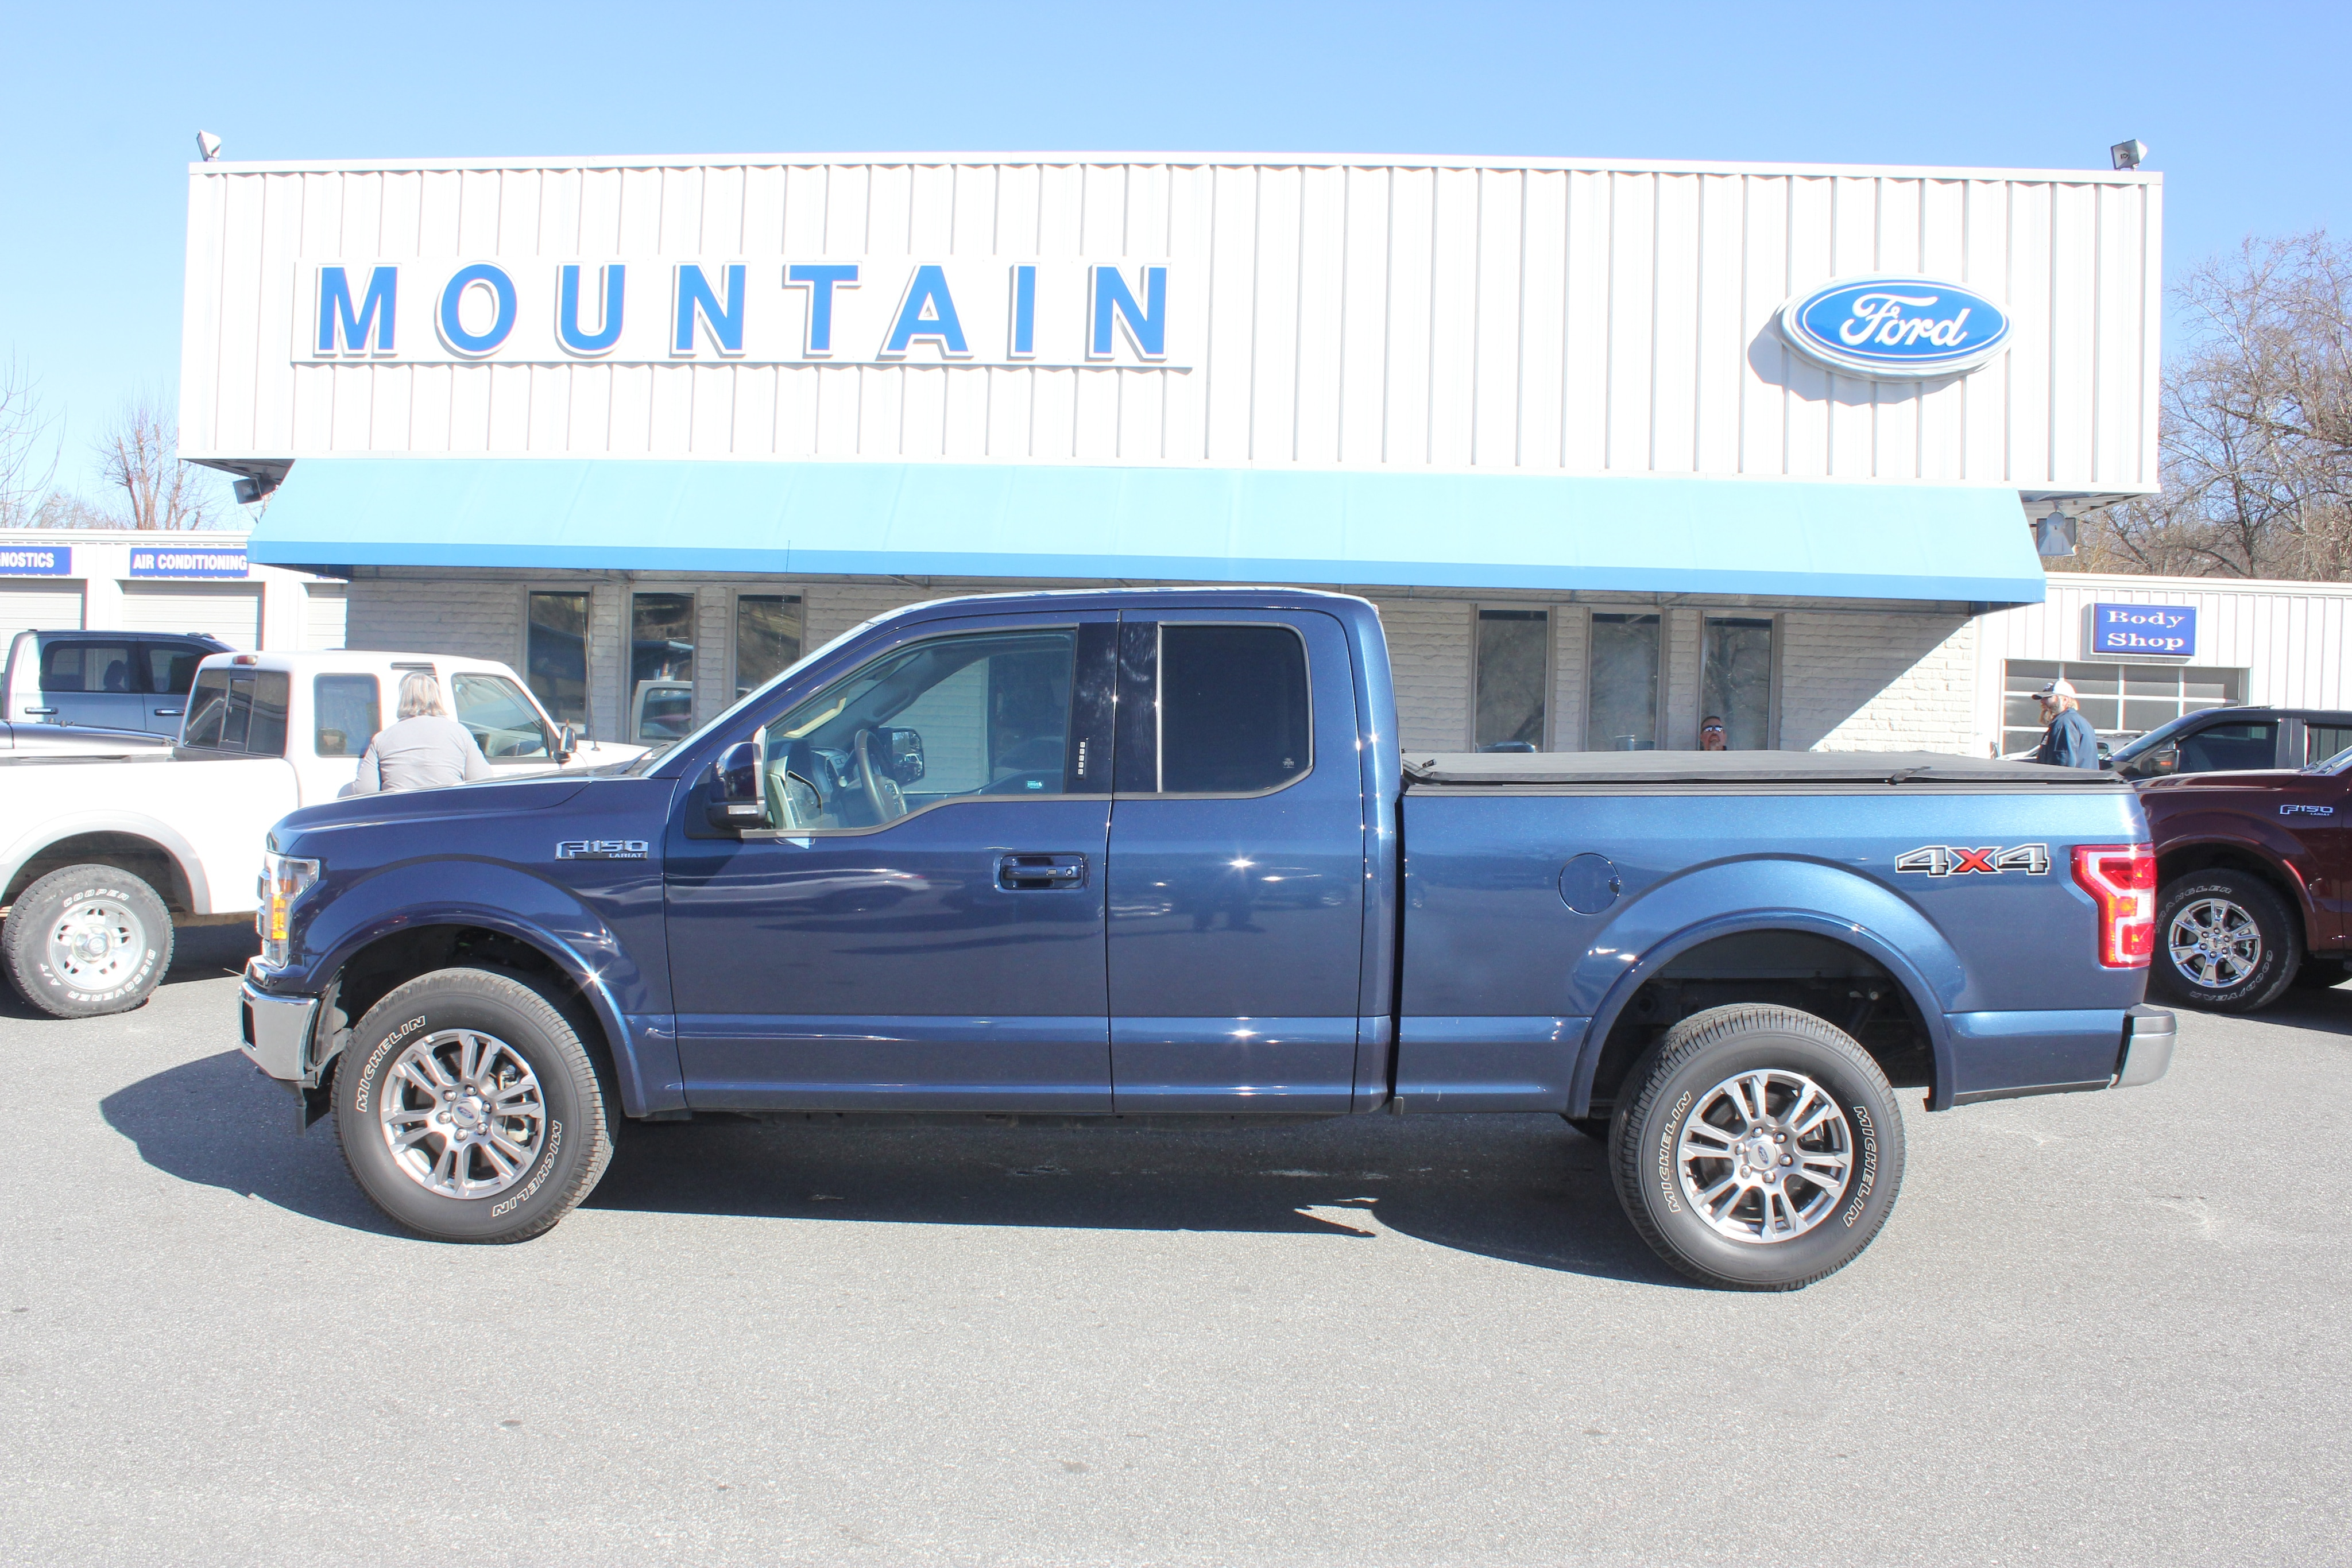 2018 Ford F-150 Lariat Extended Cab Truck